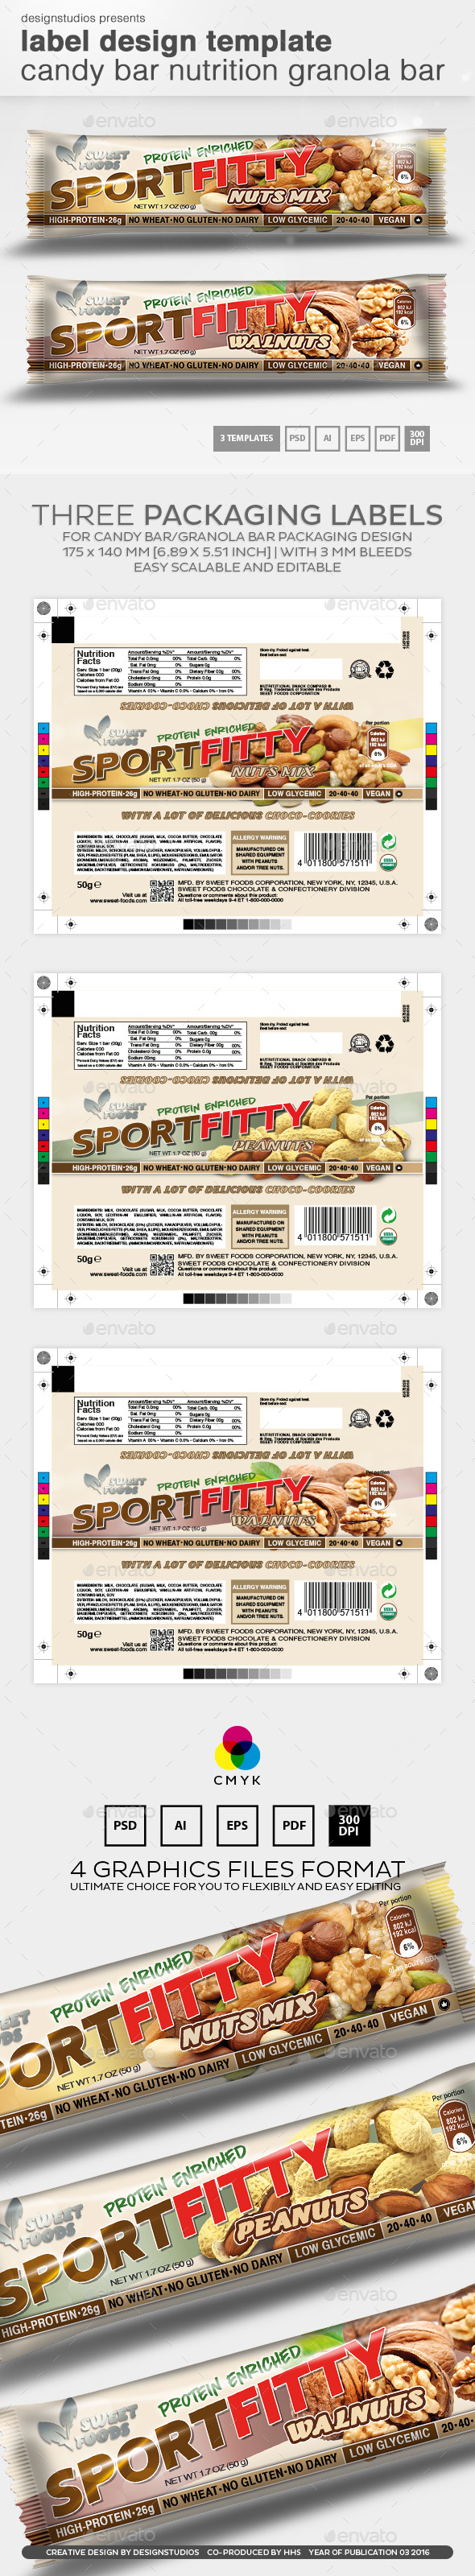 Label Design Template Candy Bar Nutrition Granola Bar - Packaging Print Templates